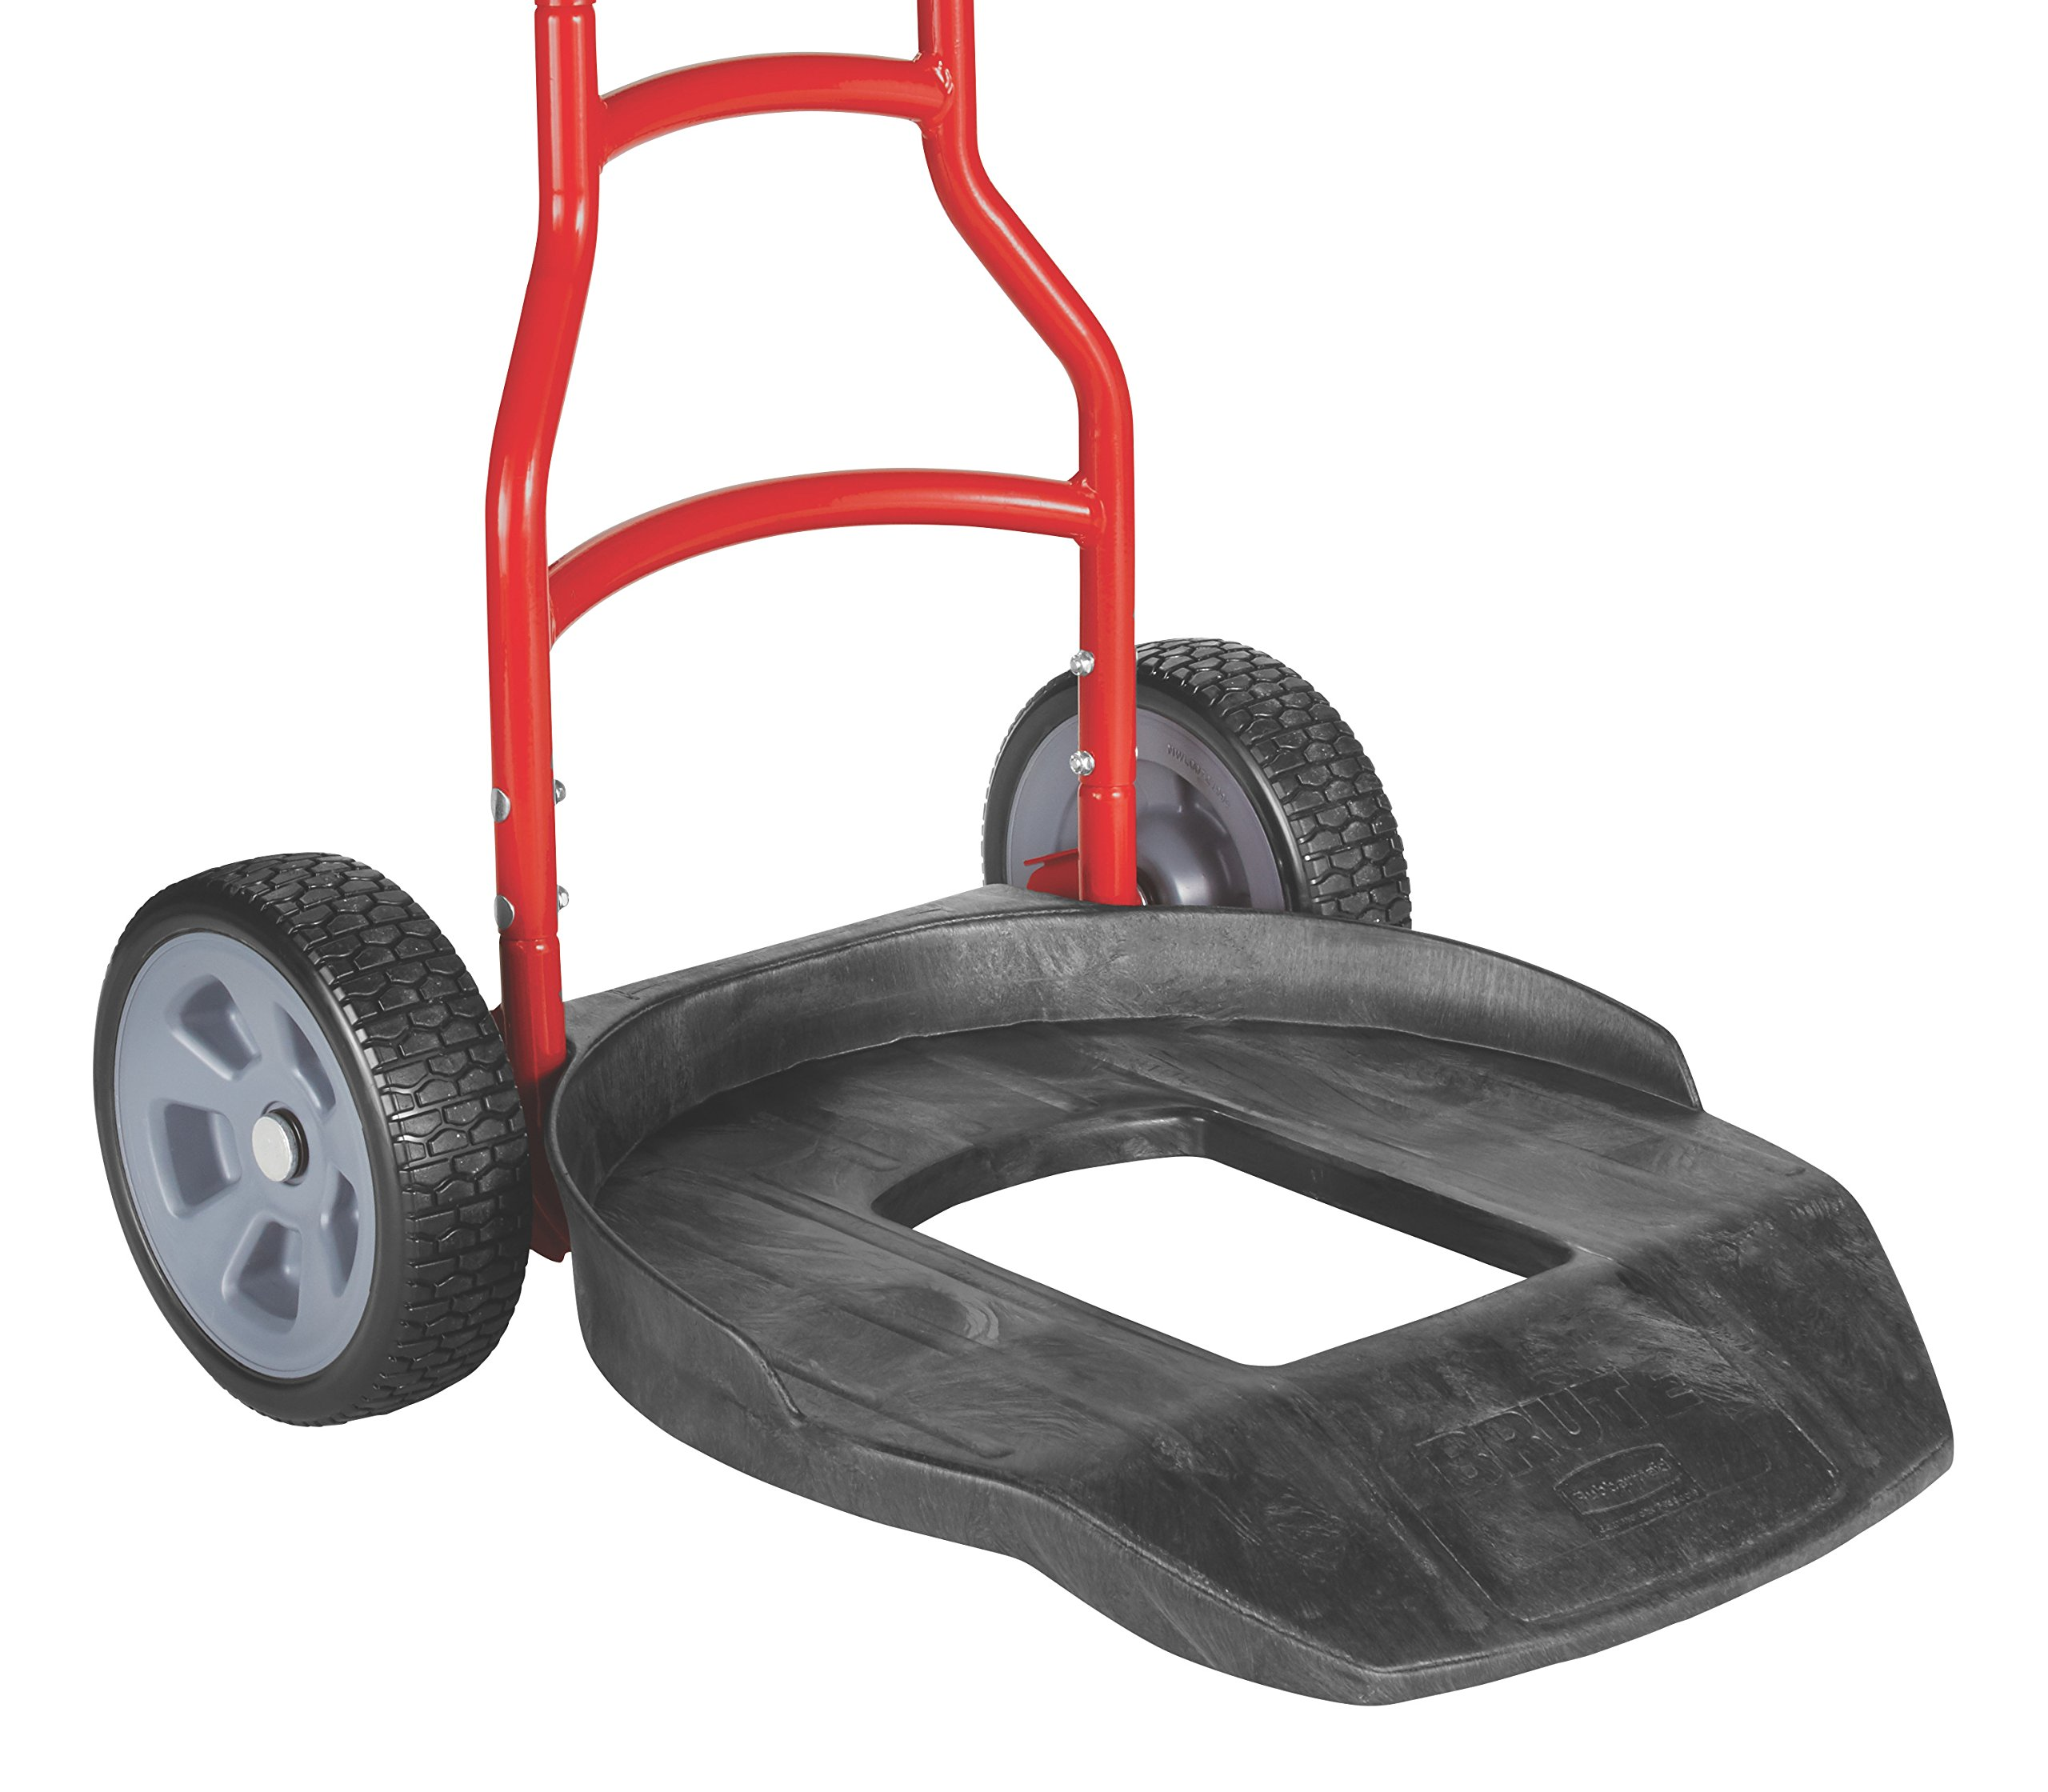 Rubbermaid Commercial Products Brute Construction and Landscape Dolly (1997410) by Rubbermaid Commercial Products (Image #7)